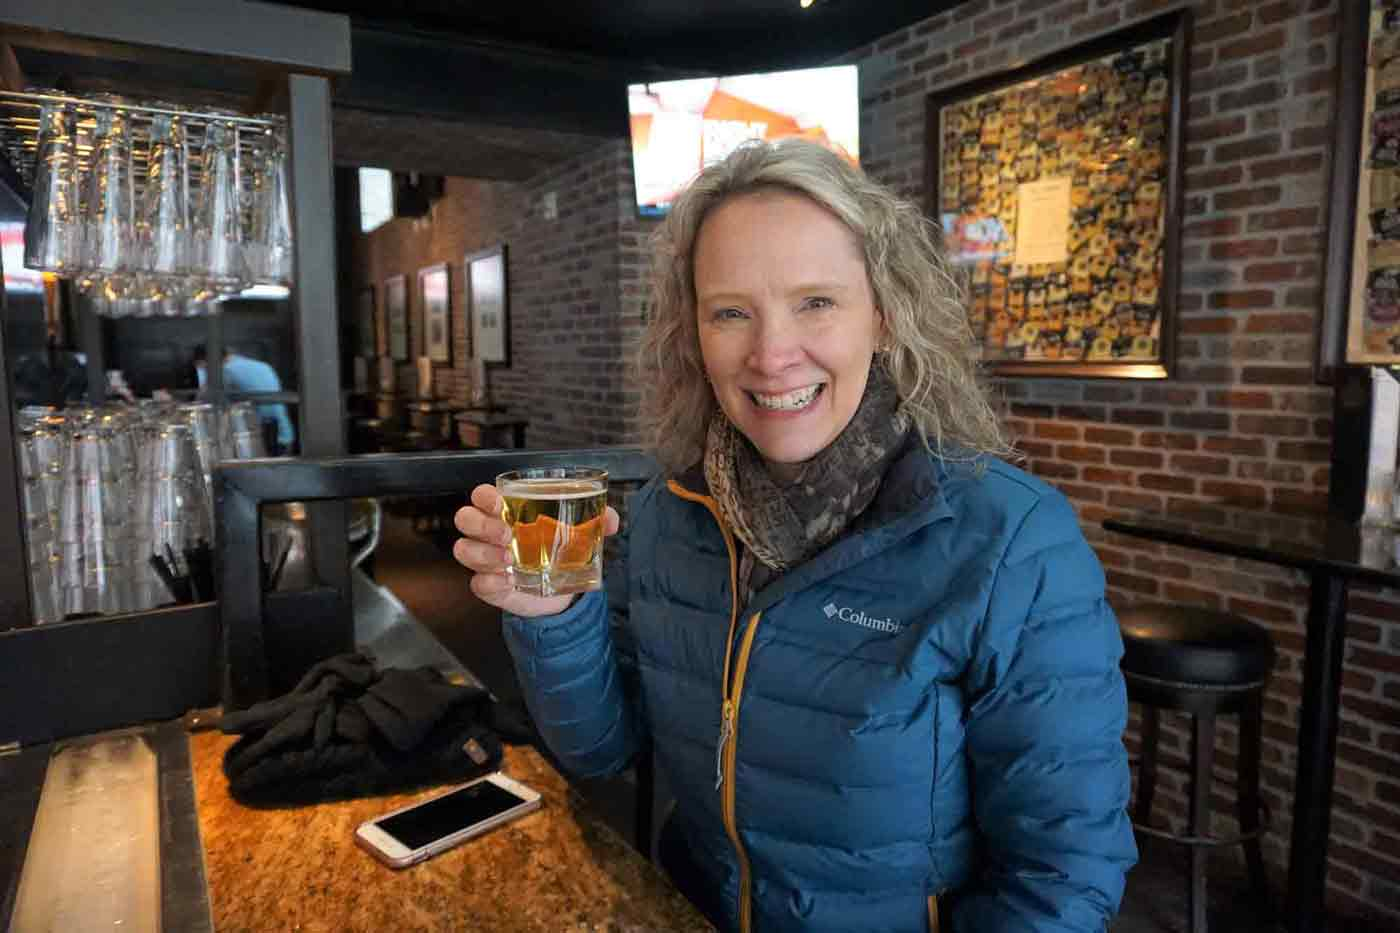 Wendy during the self-guided beer tour sampling a small beer at Henry's 12th Street Tavern in Portland Oregon